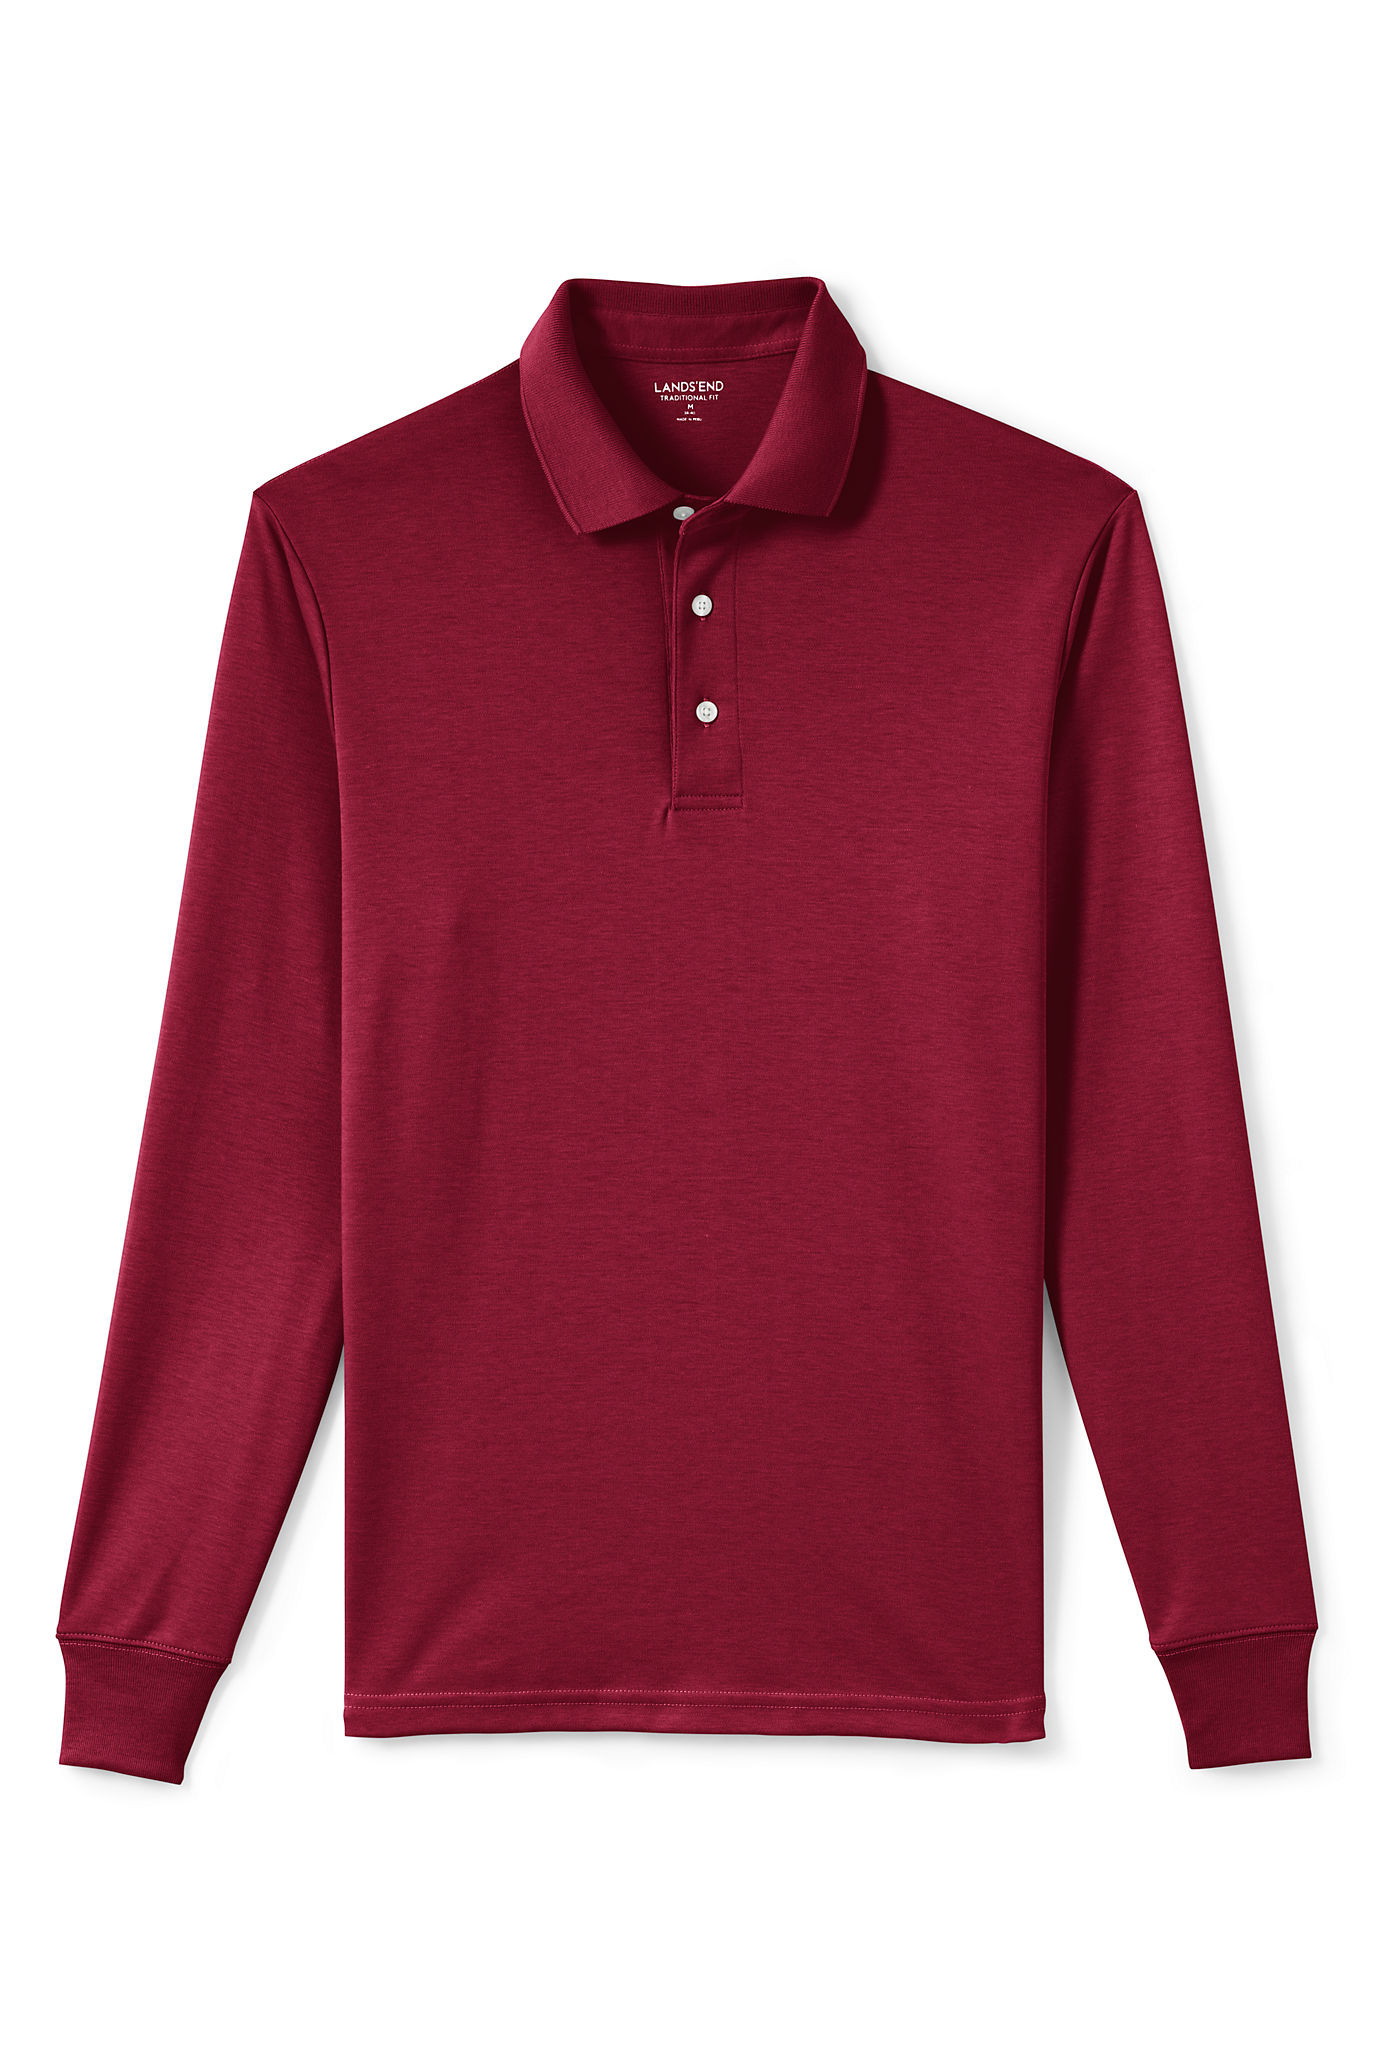 273398bb Lands' End: Polo Shirts for Men